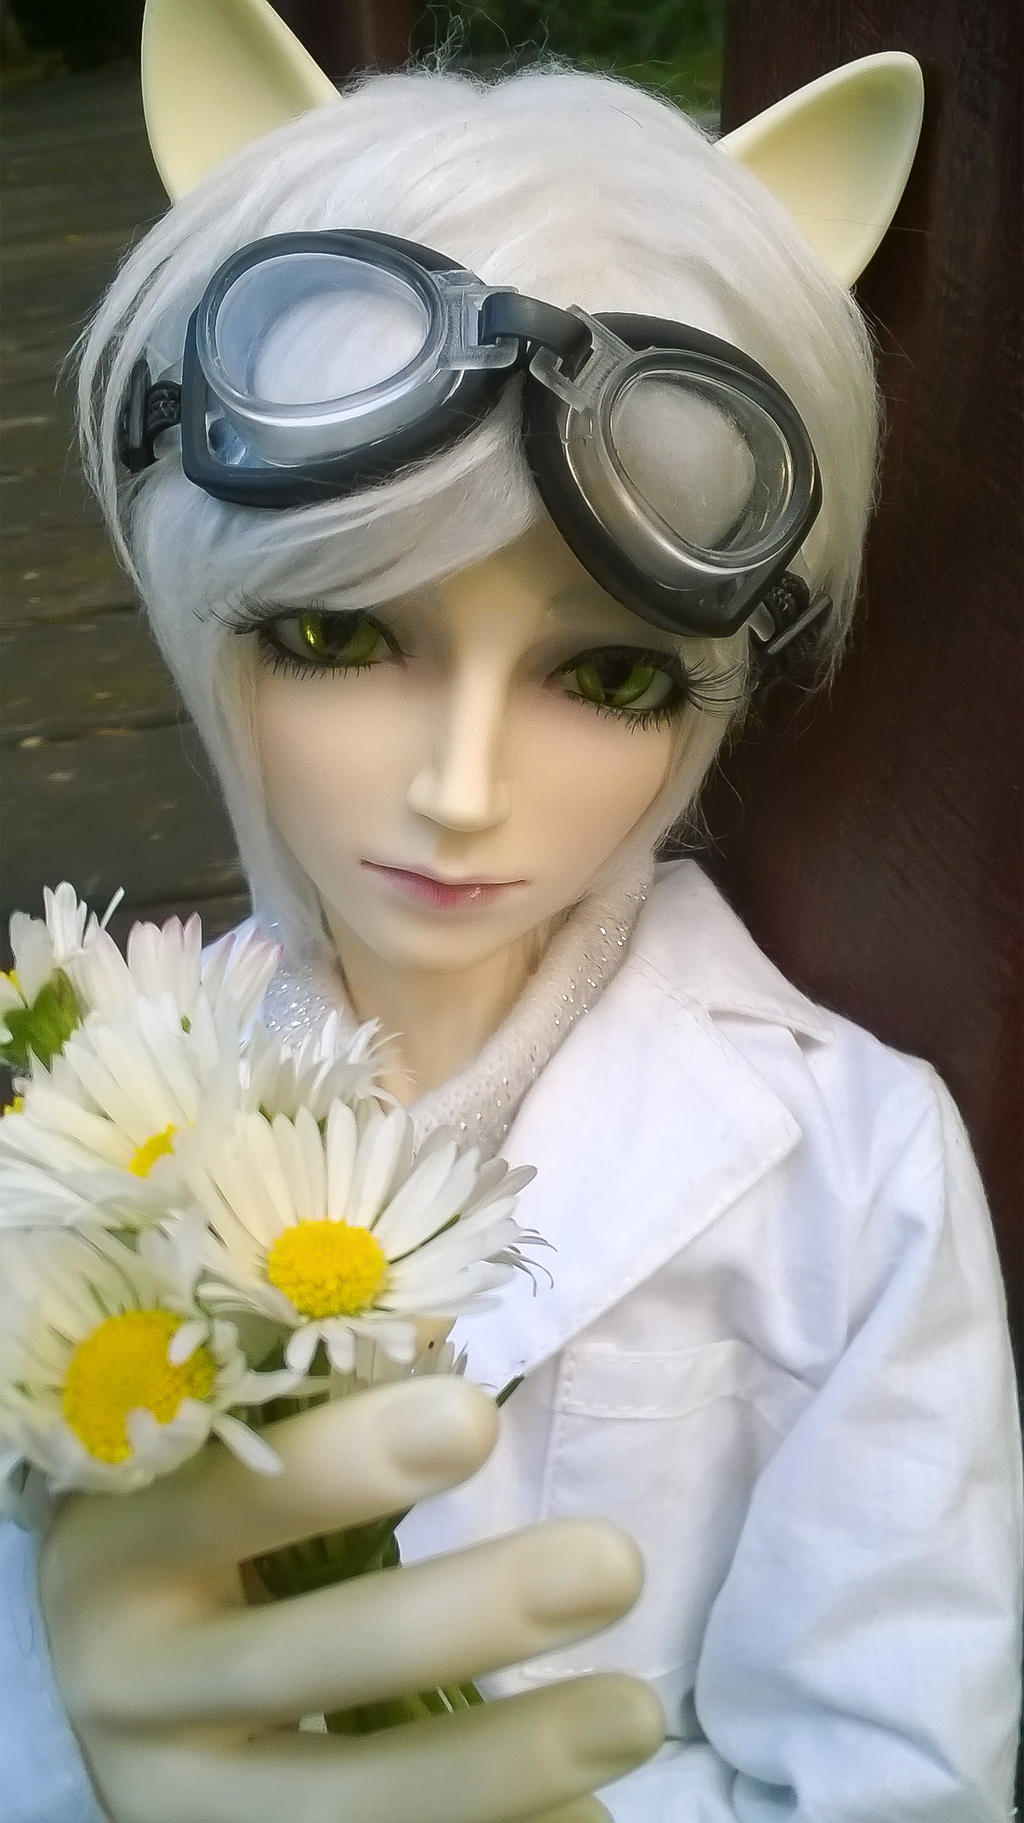 flowers for you by atsuroki on DeviantArt